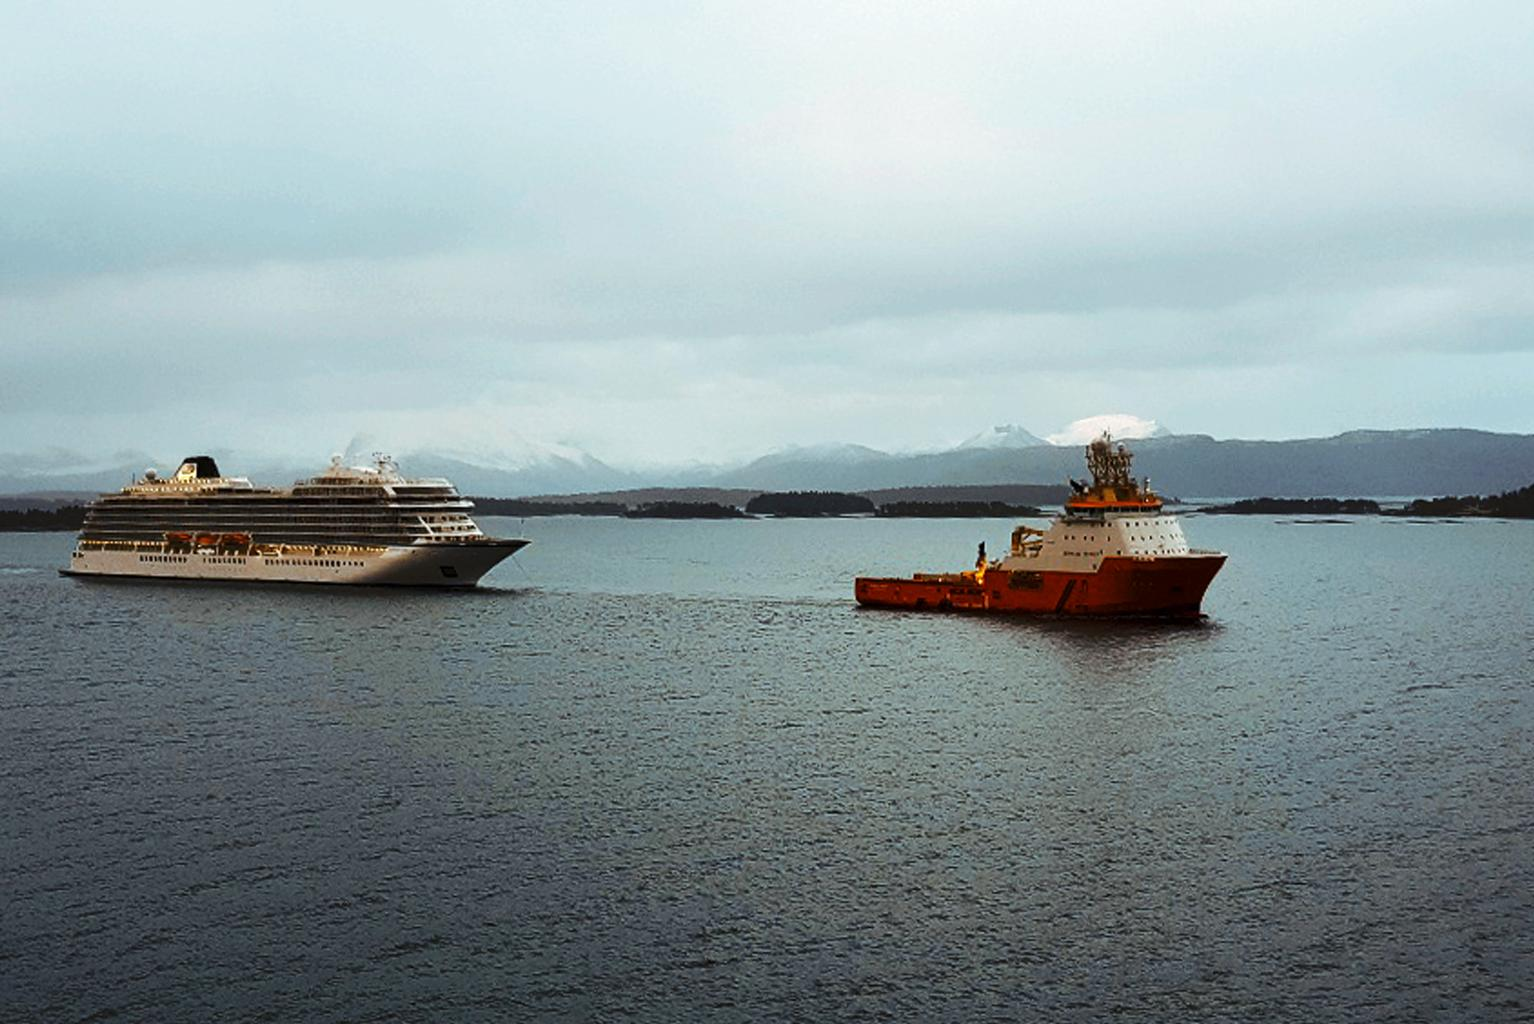 Viking Sky Engine Failure Caused by Low Oil Pressure